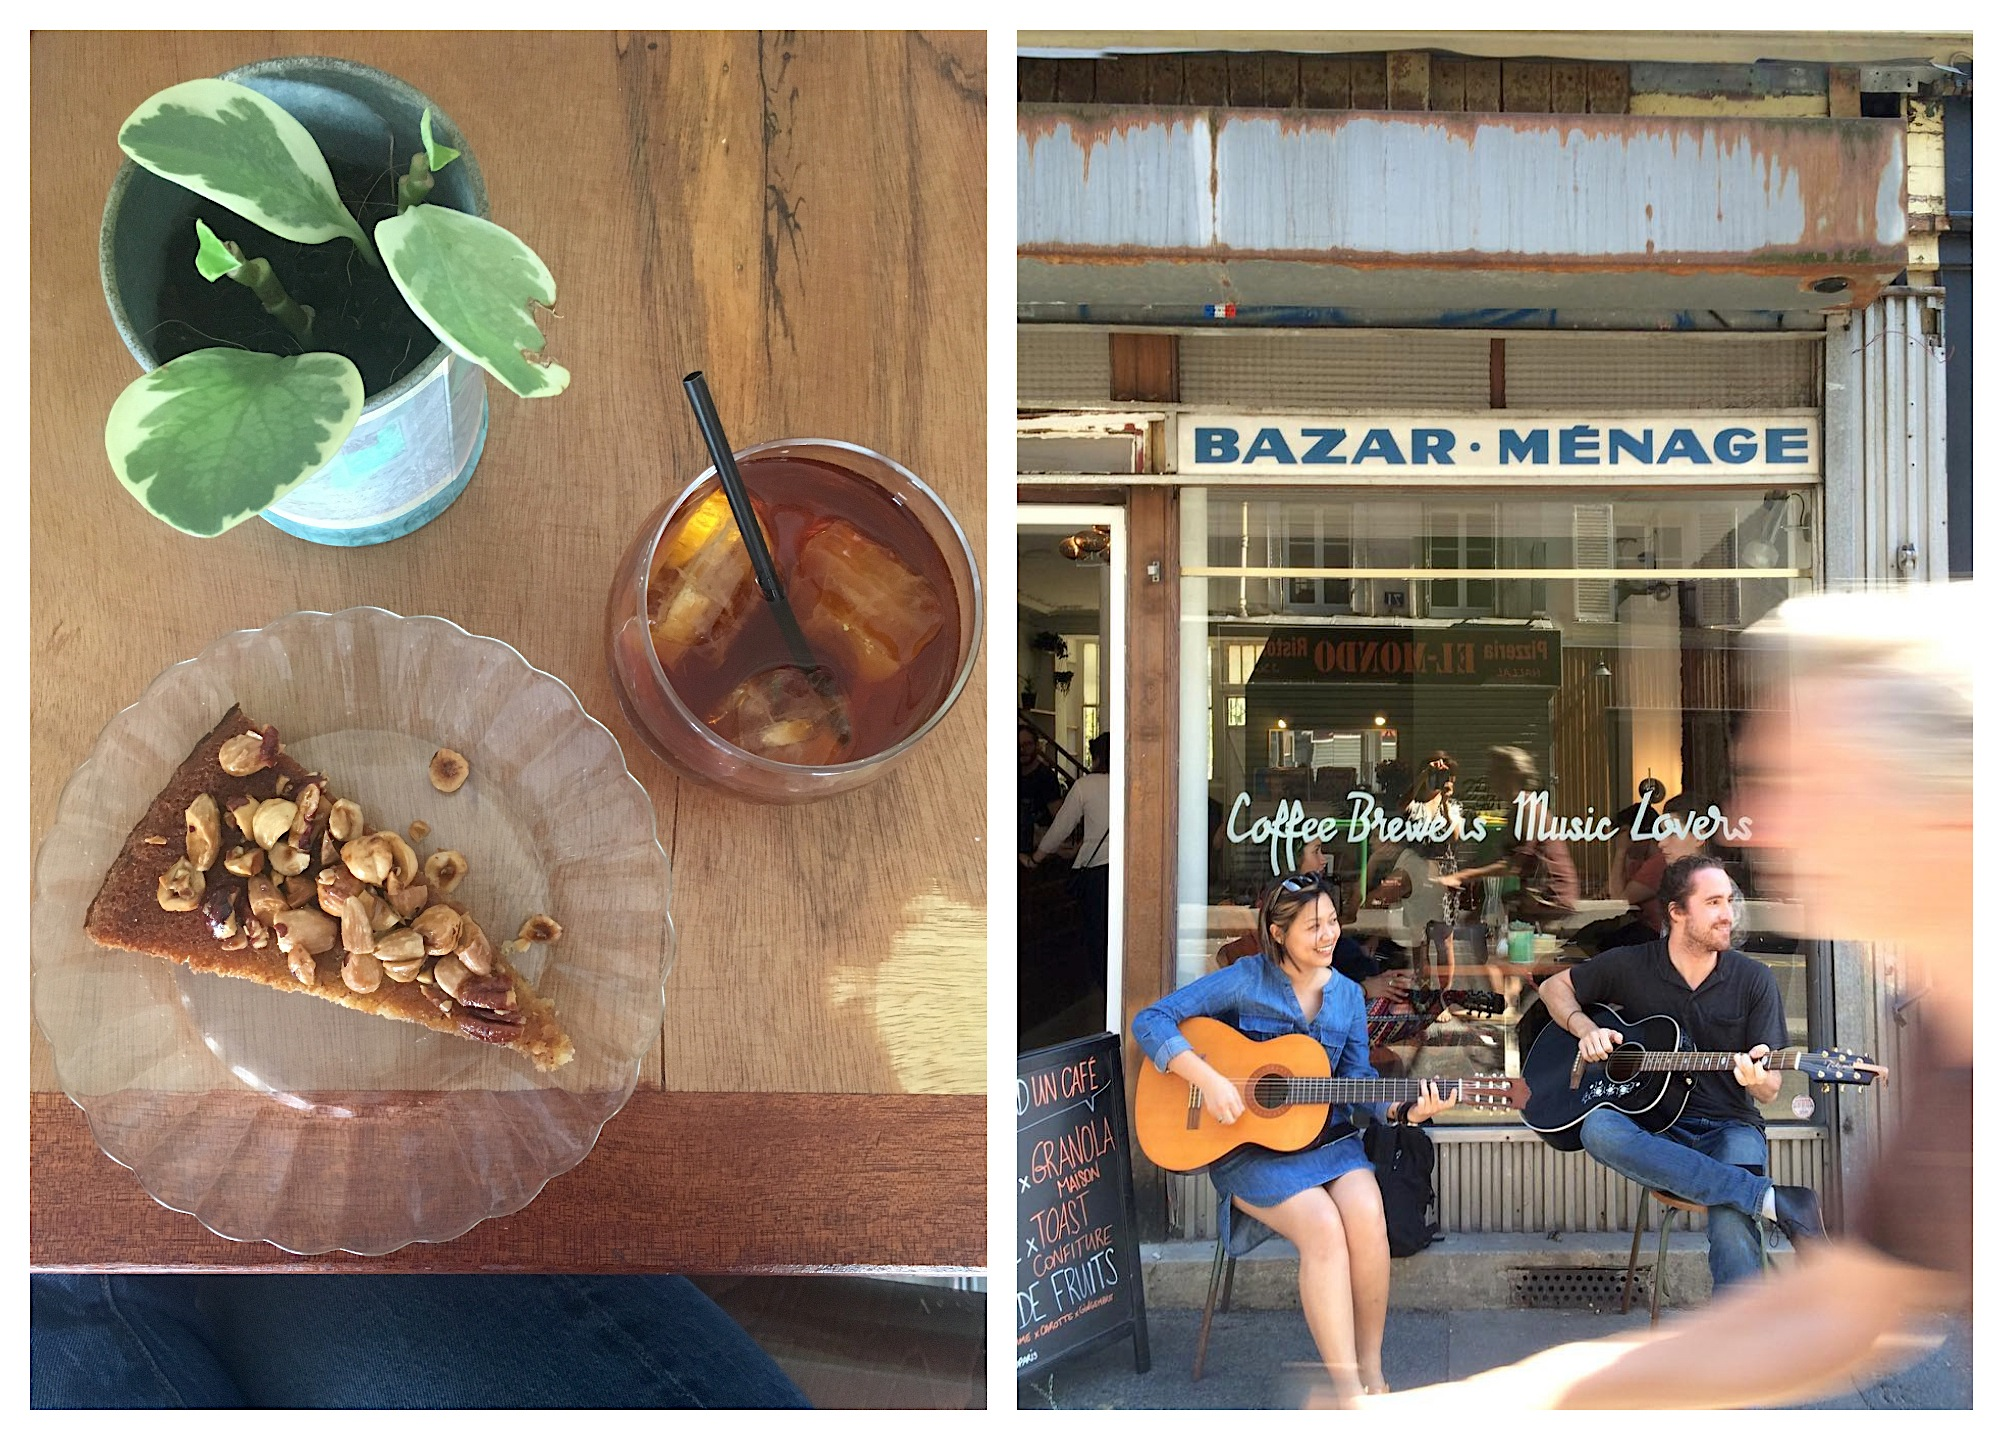 The Hood is one of the best cofee shops in Paris for cake and fruit juices (left) and sometimes in summer artists perform live music outside in front of the vintage window with an old sign that reads 'bazar - cleaning' (right).